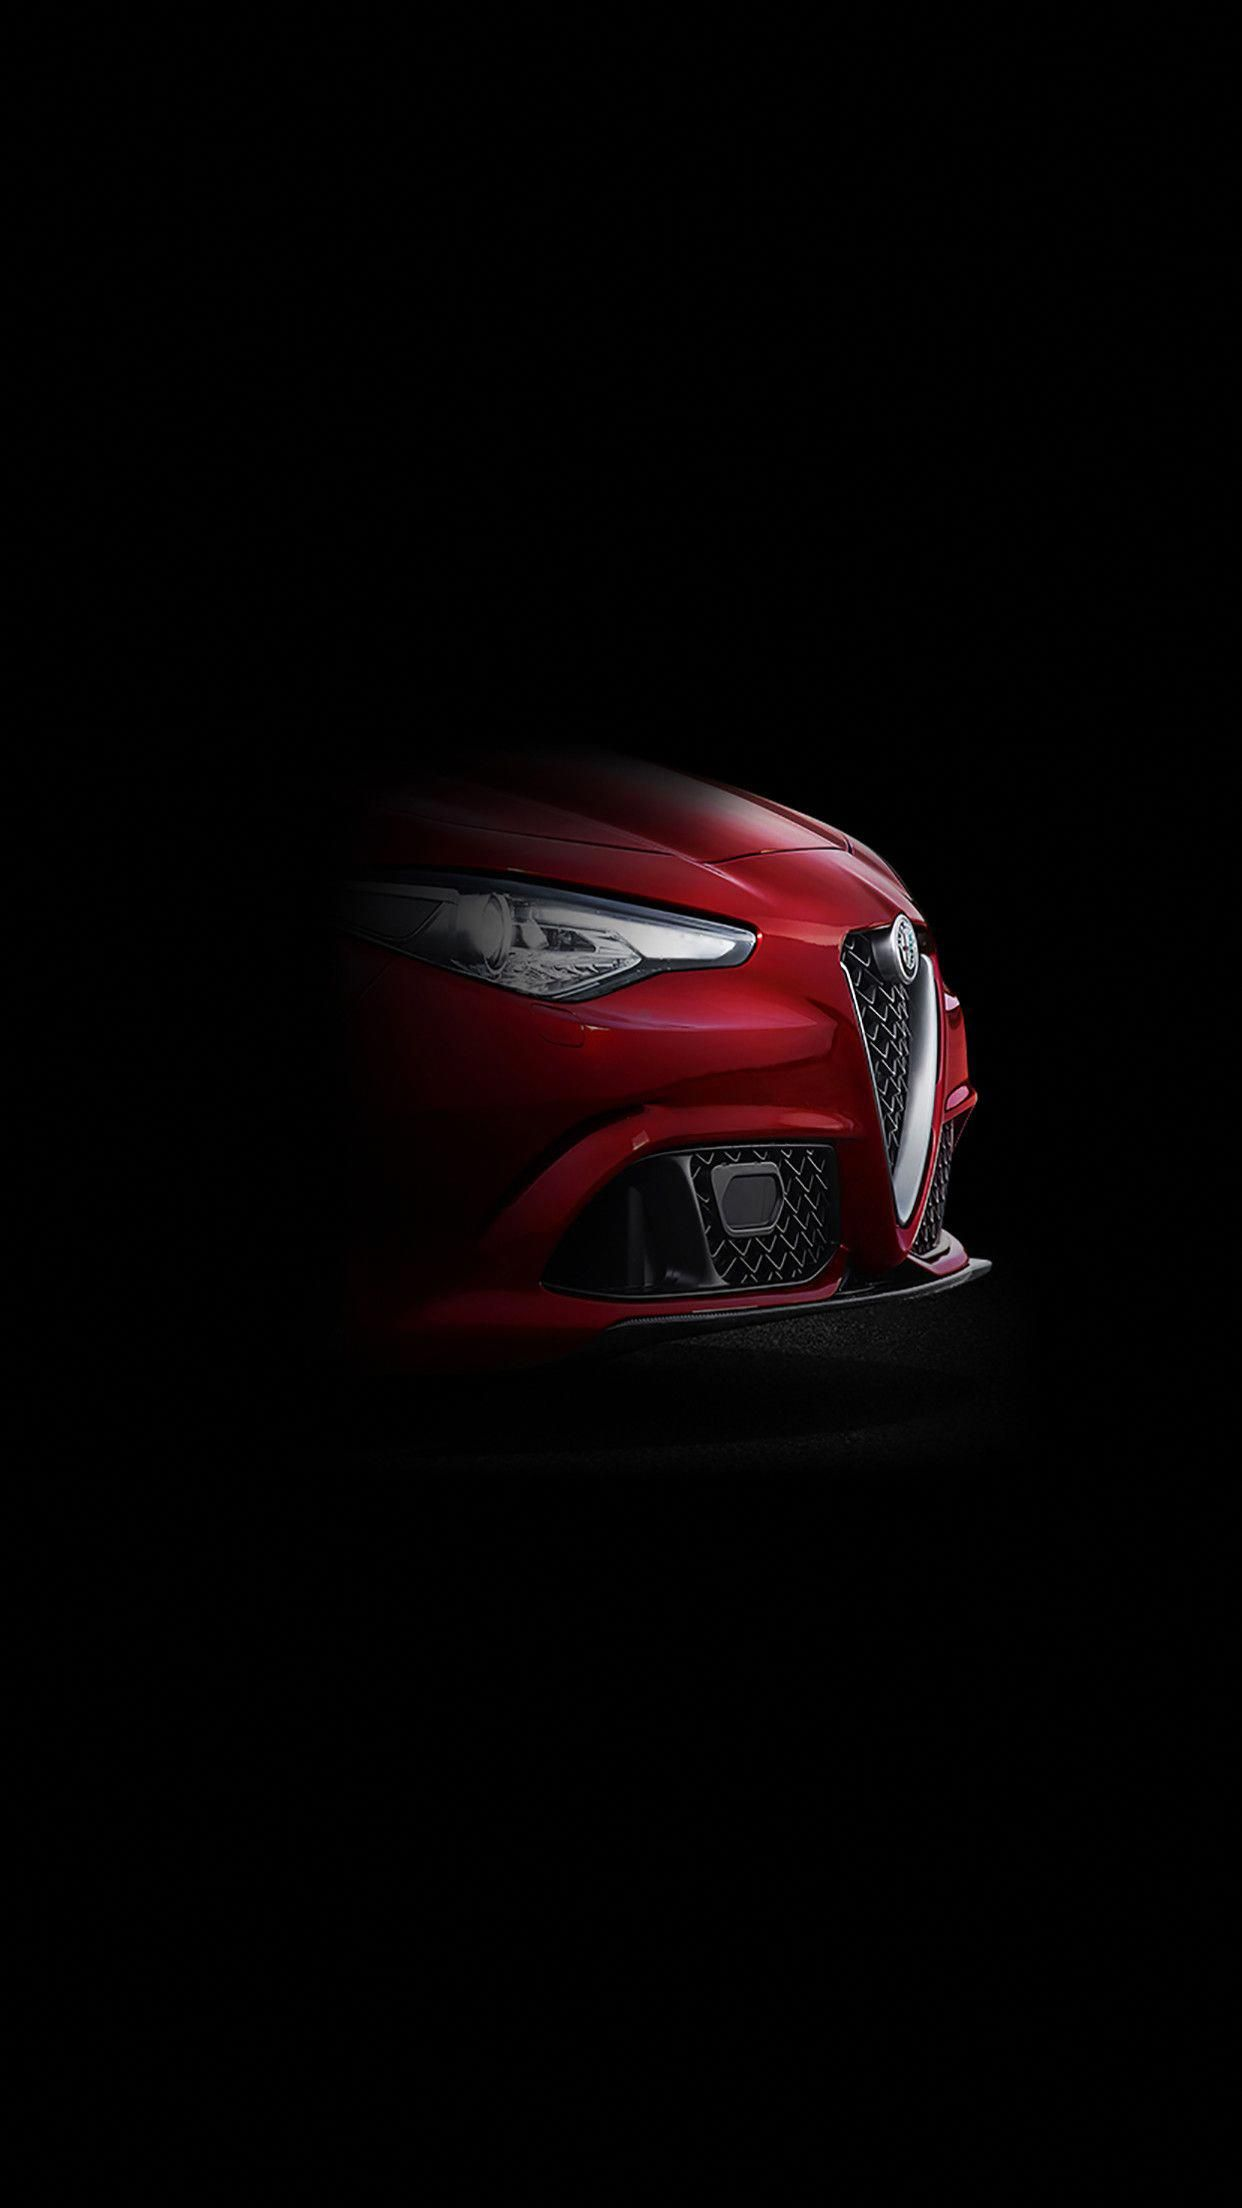 Alfa Romeo Giulia Tecnologia 3wallpapers Iphone P Arallax